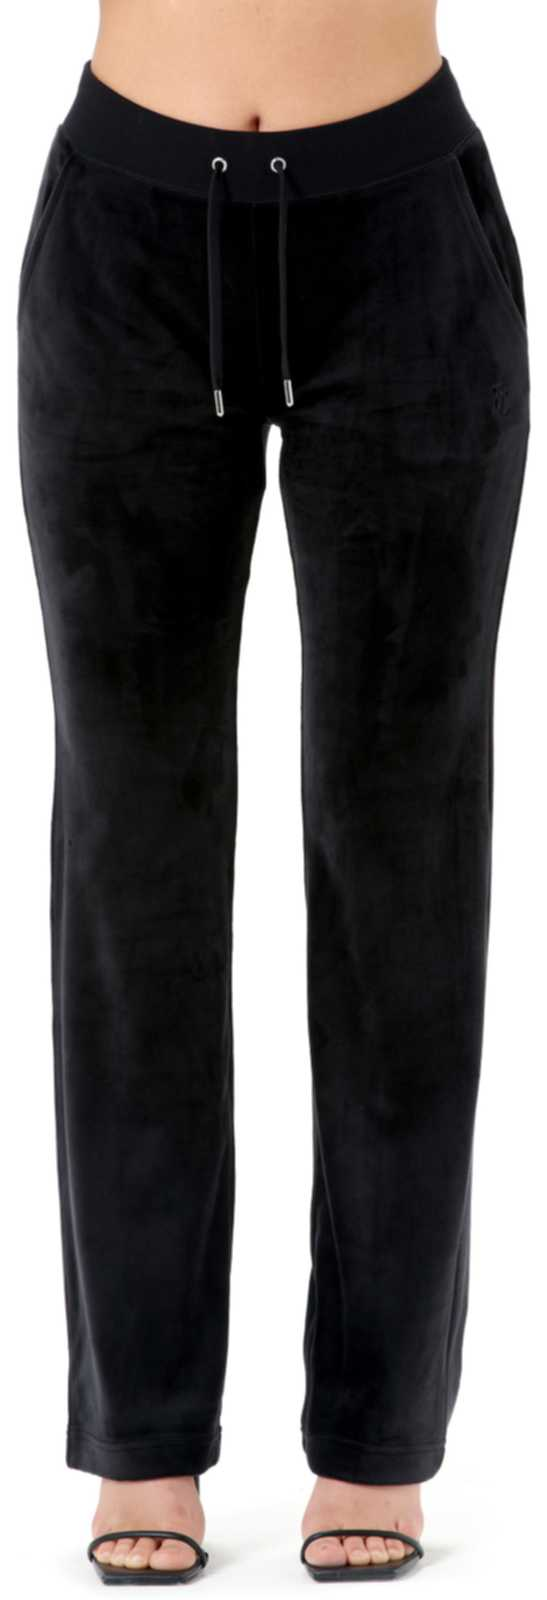 Juicy Couture Del Ray Velour Bottoms	Black